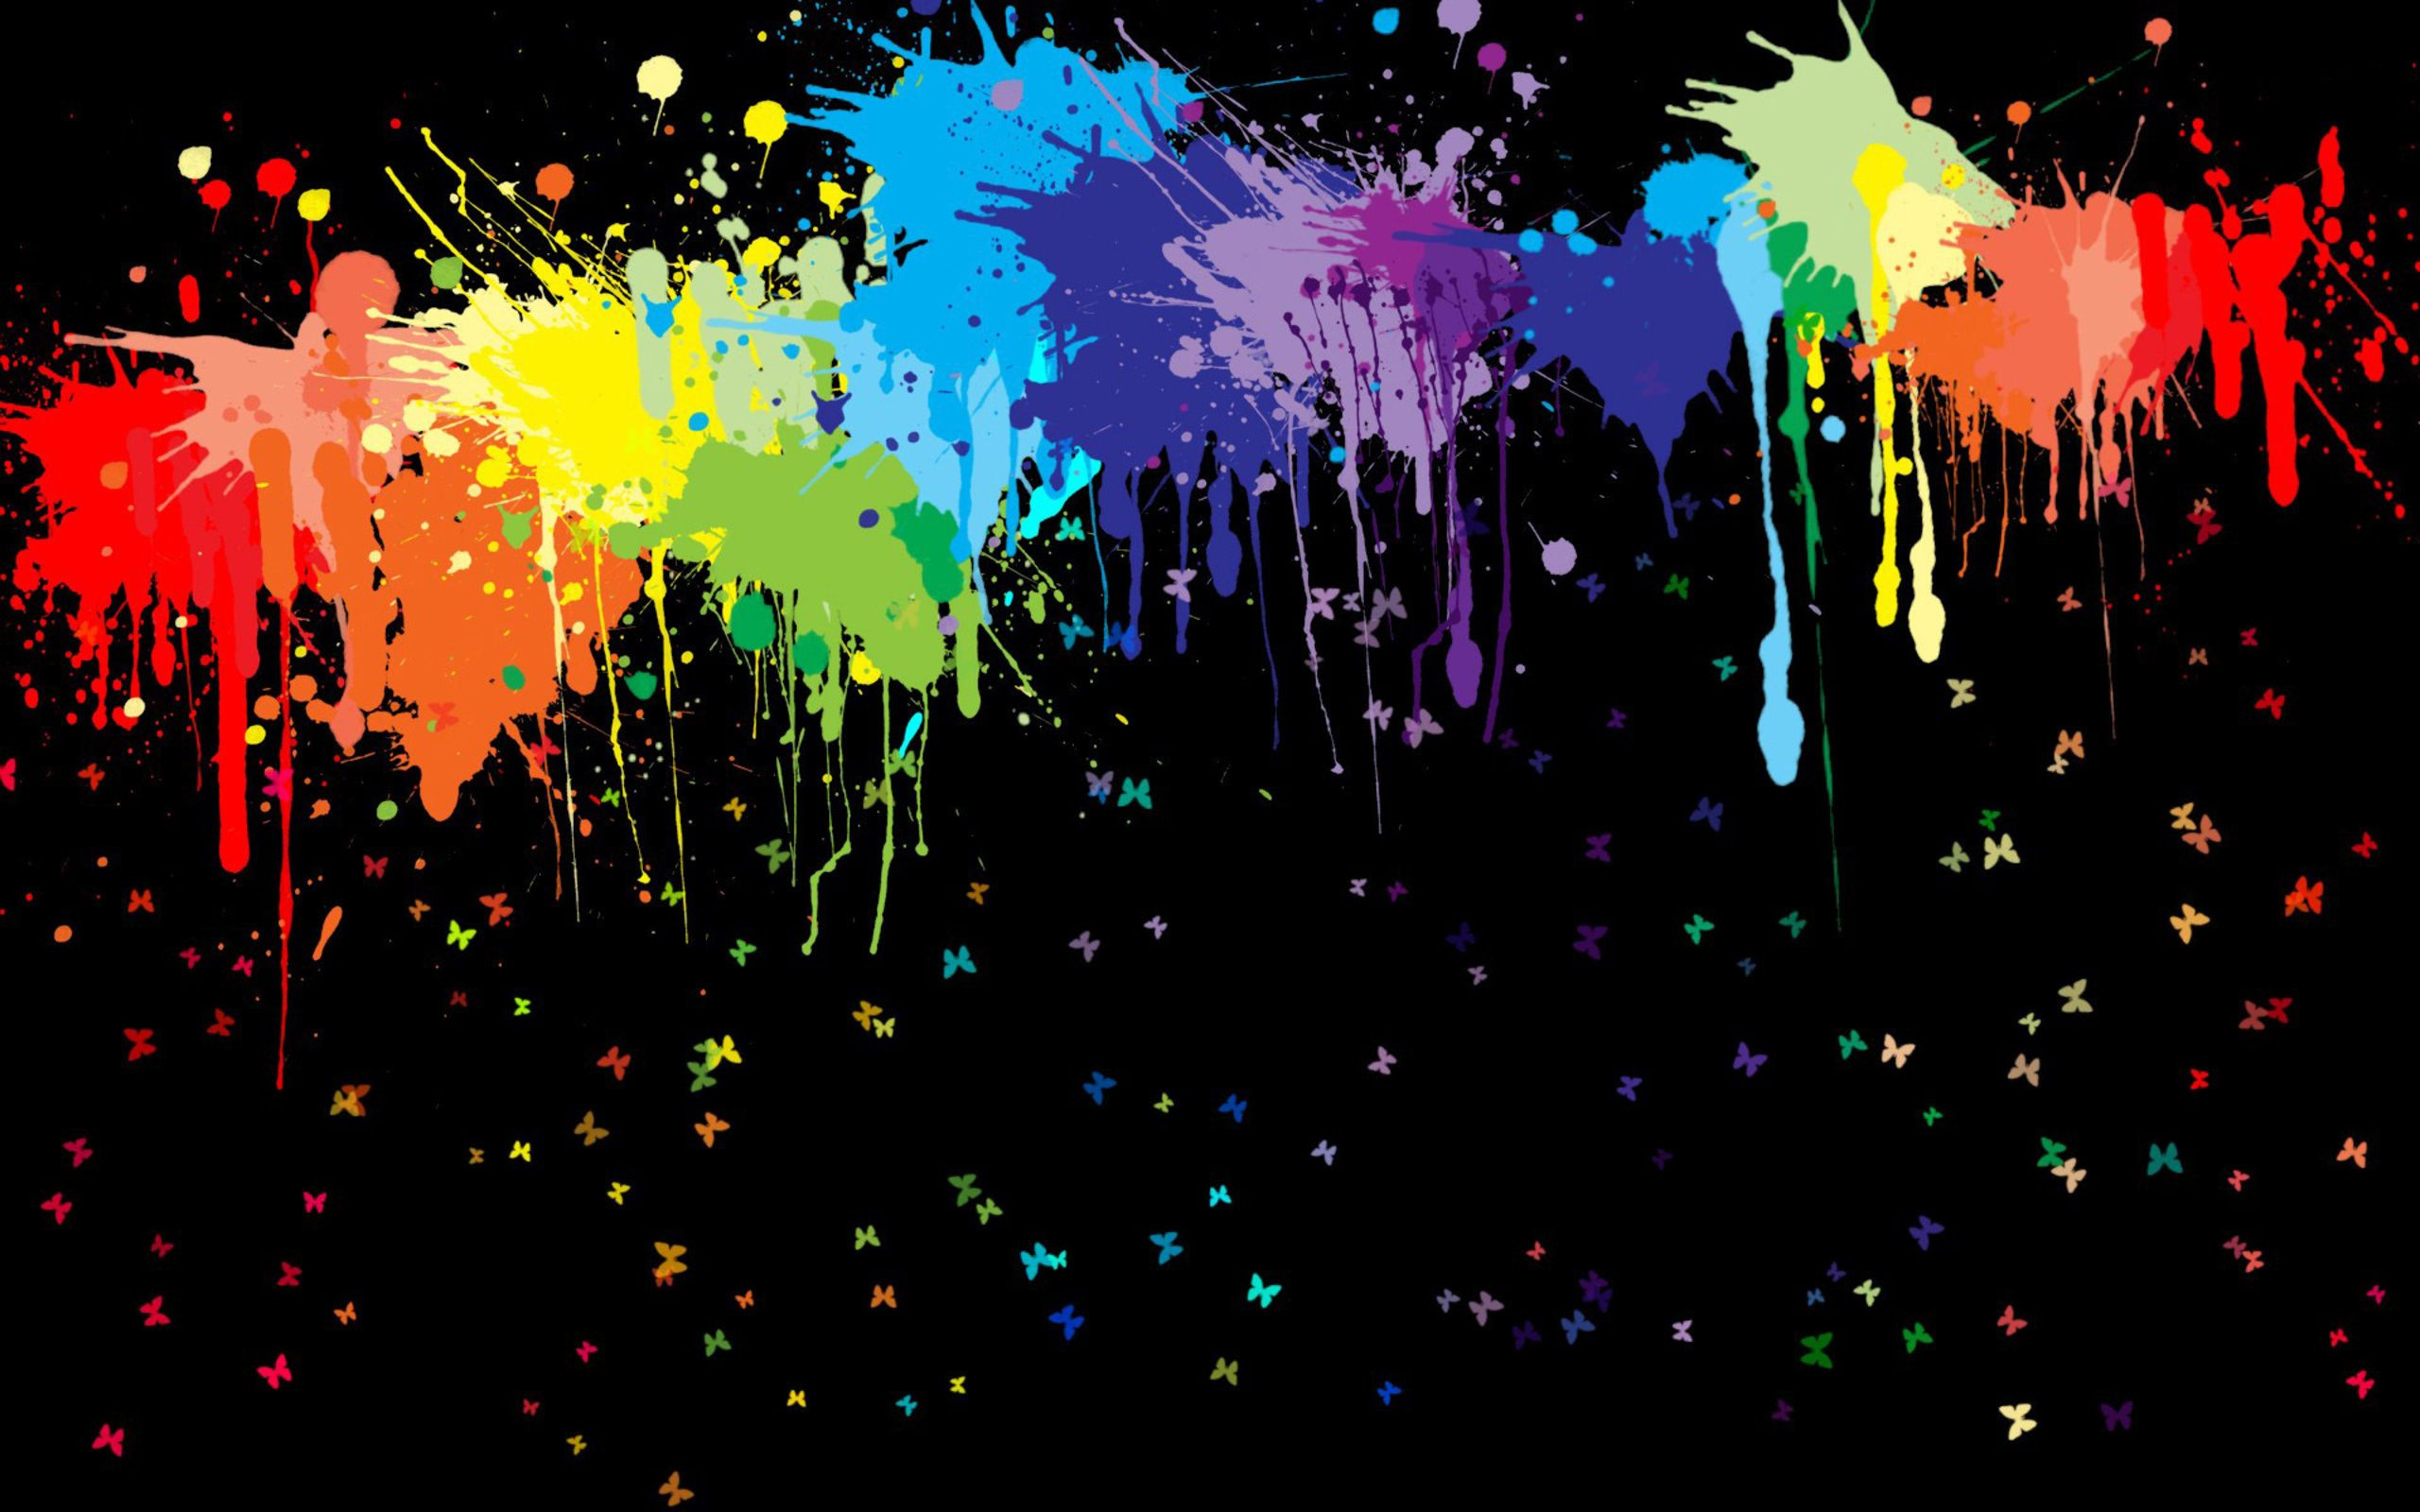 3d paint splatter black background. wallpaper murals abstract painting color 3d u2013 world hd wallpapers 3d paint splatter black background e